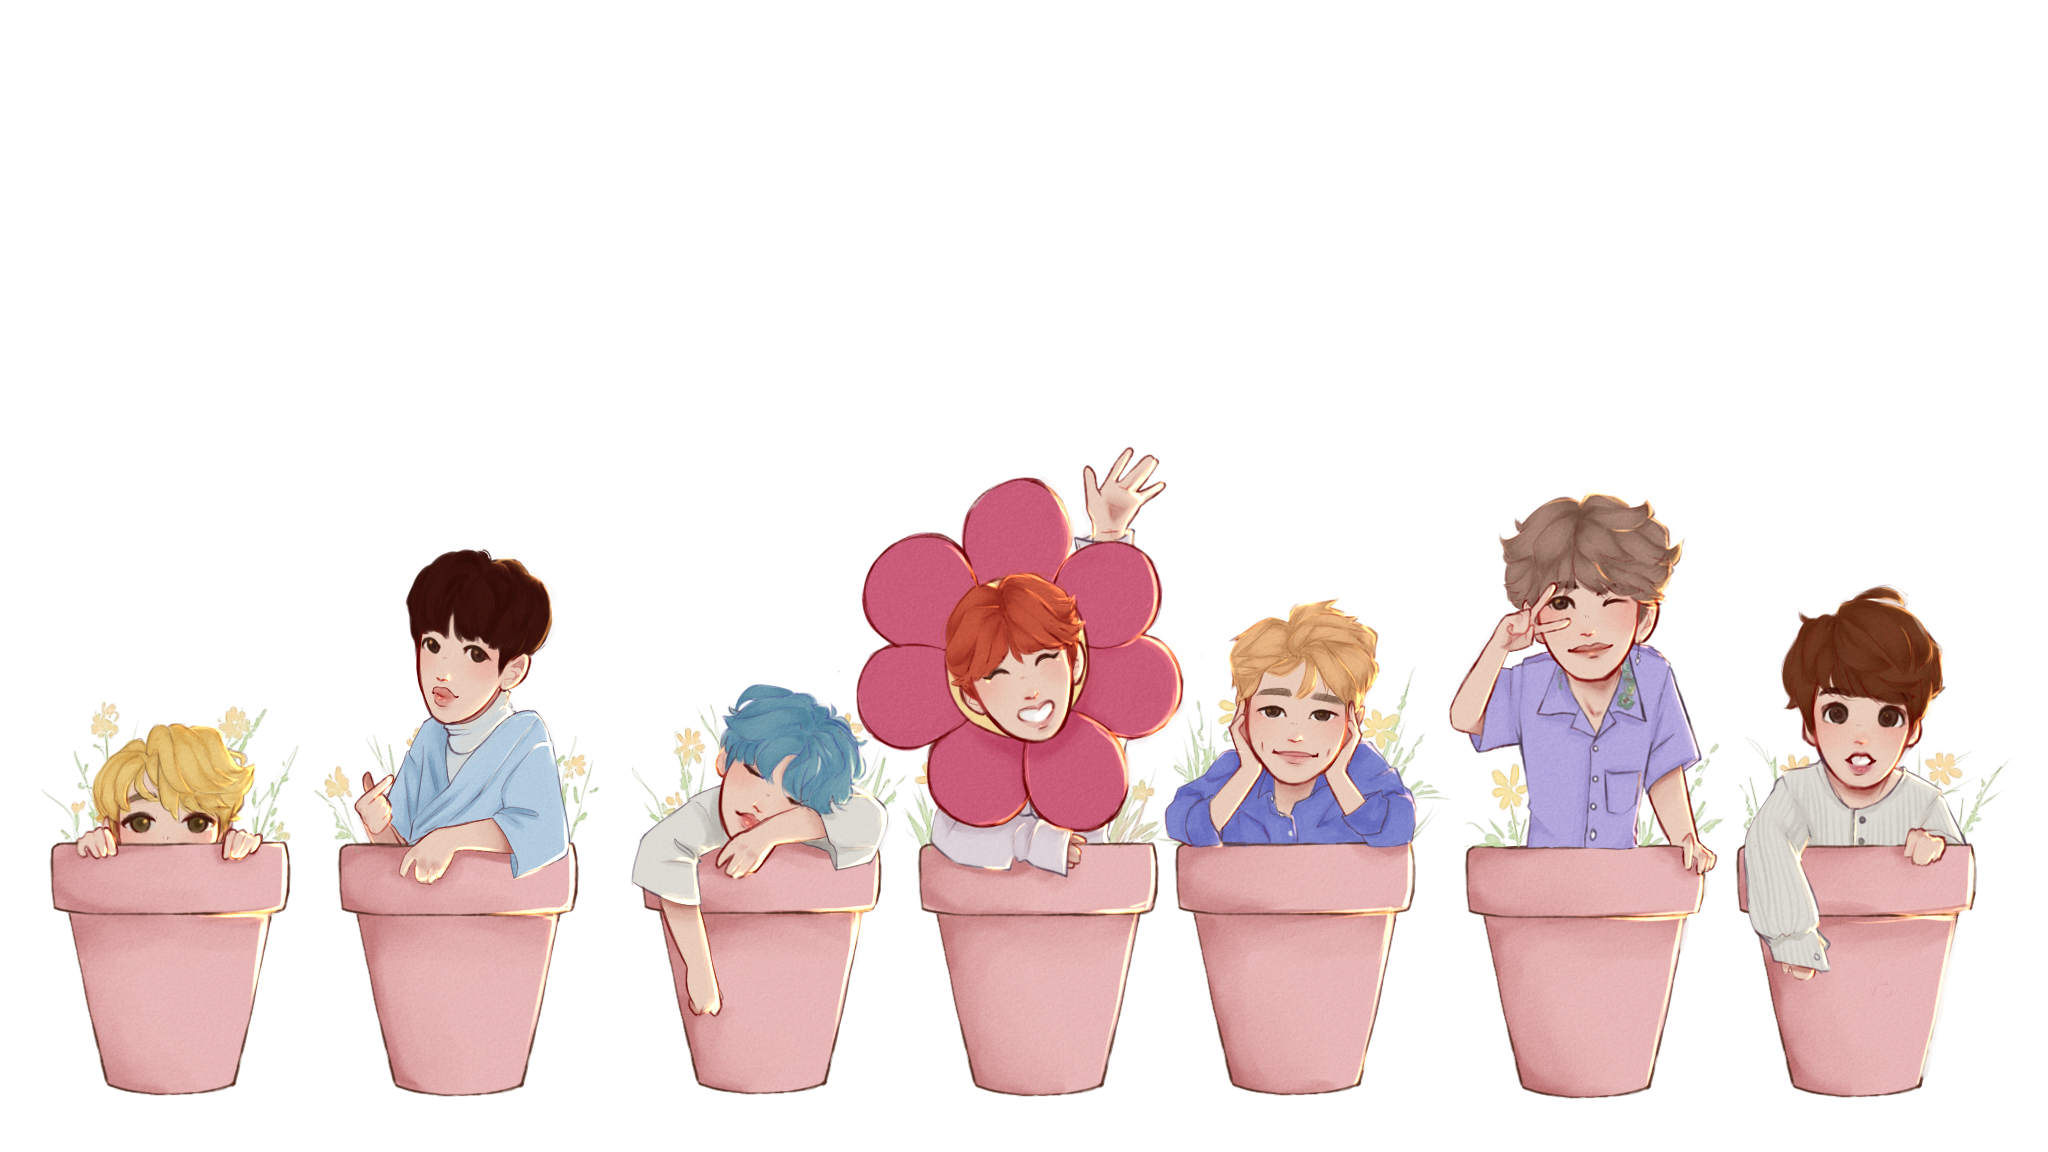 Bts stickers png. Plant pot individual peppermintpapers